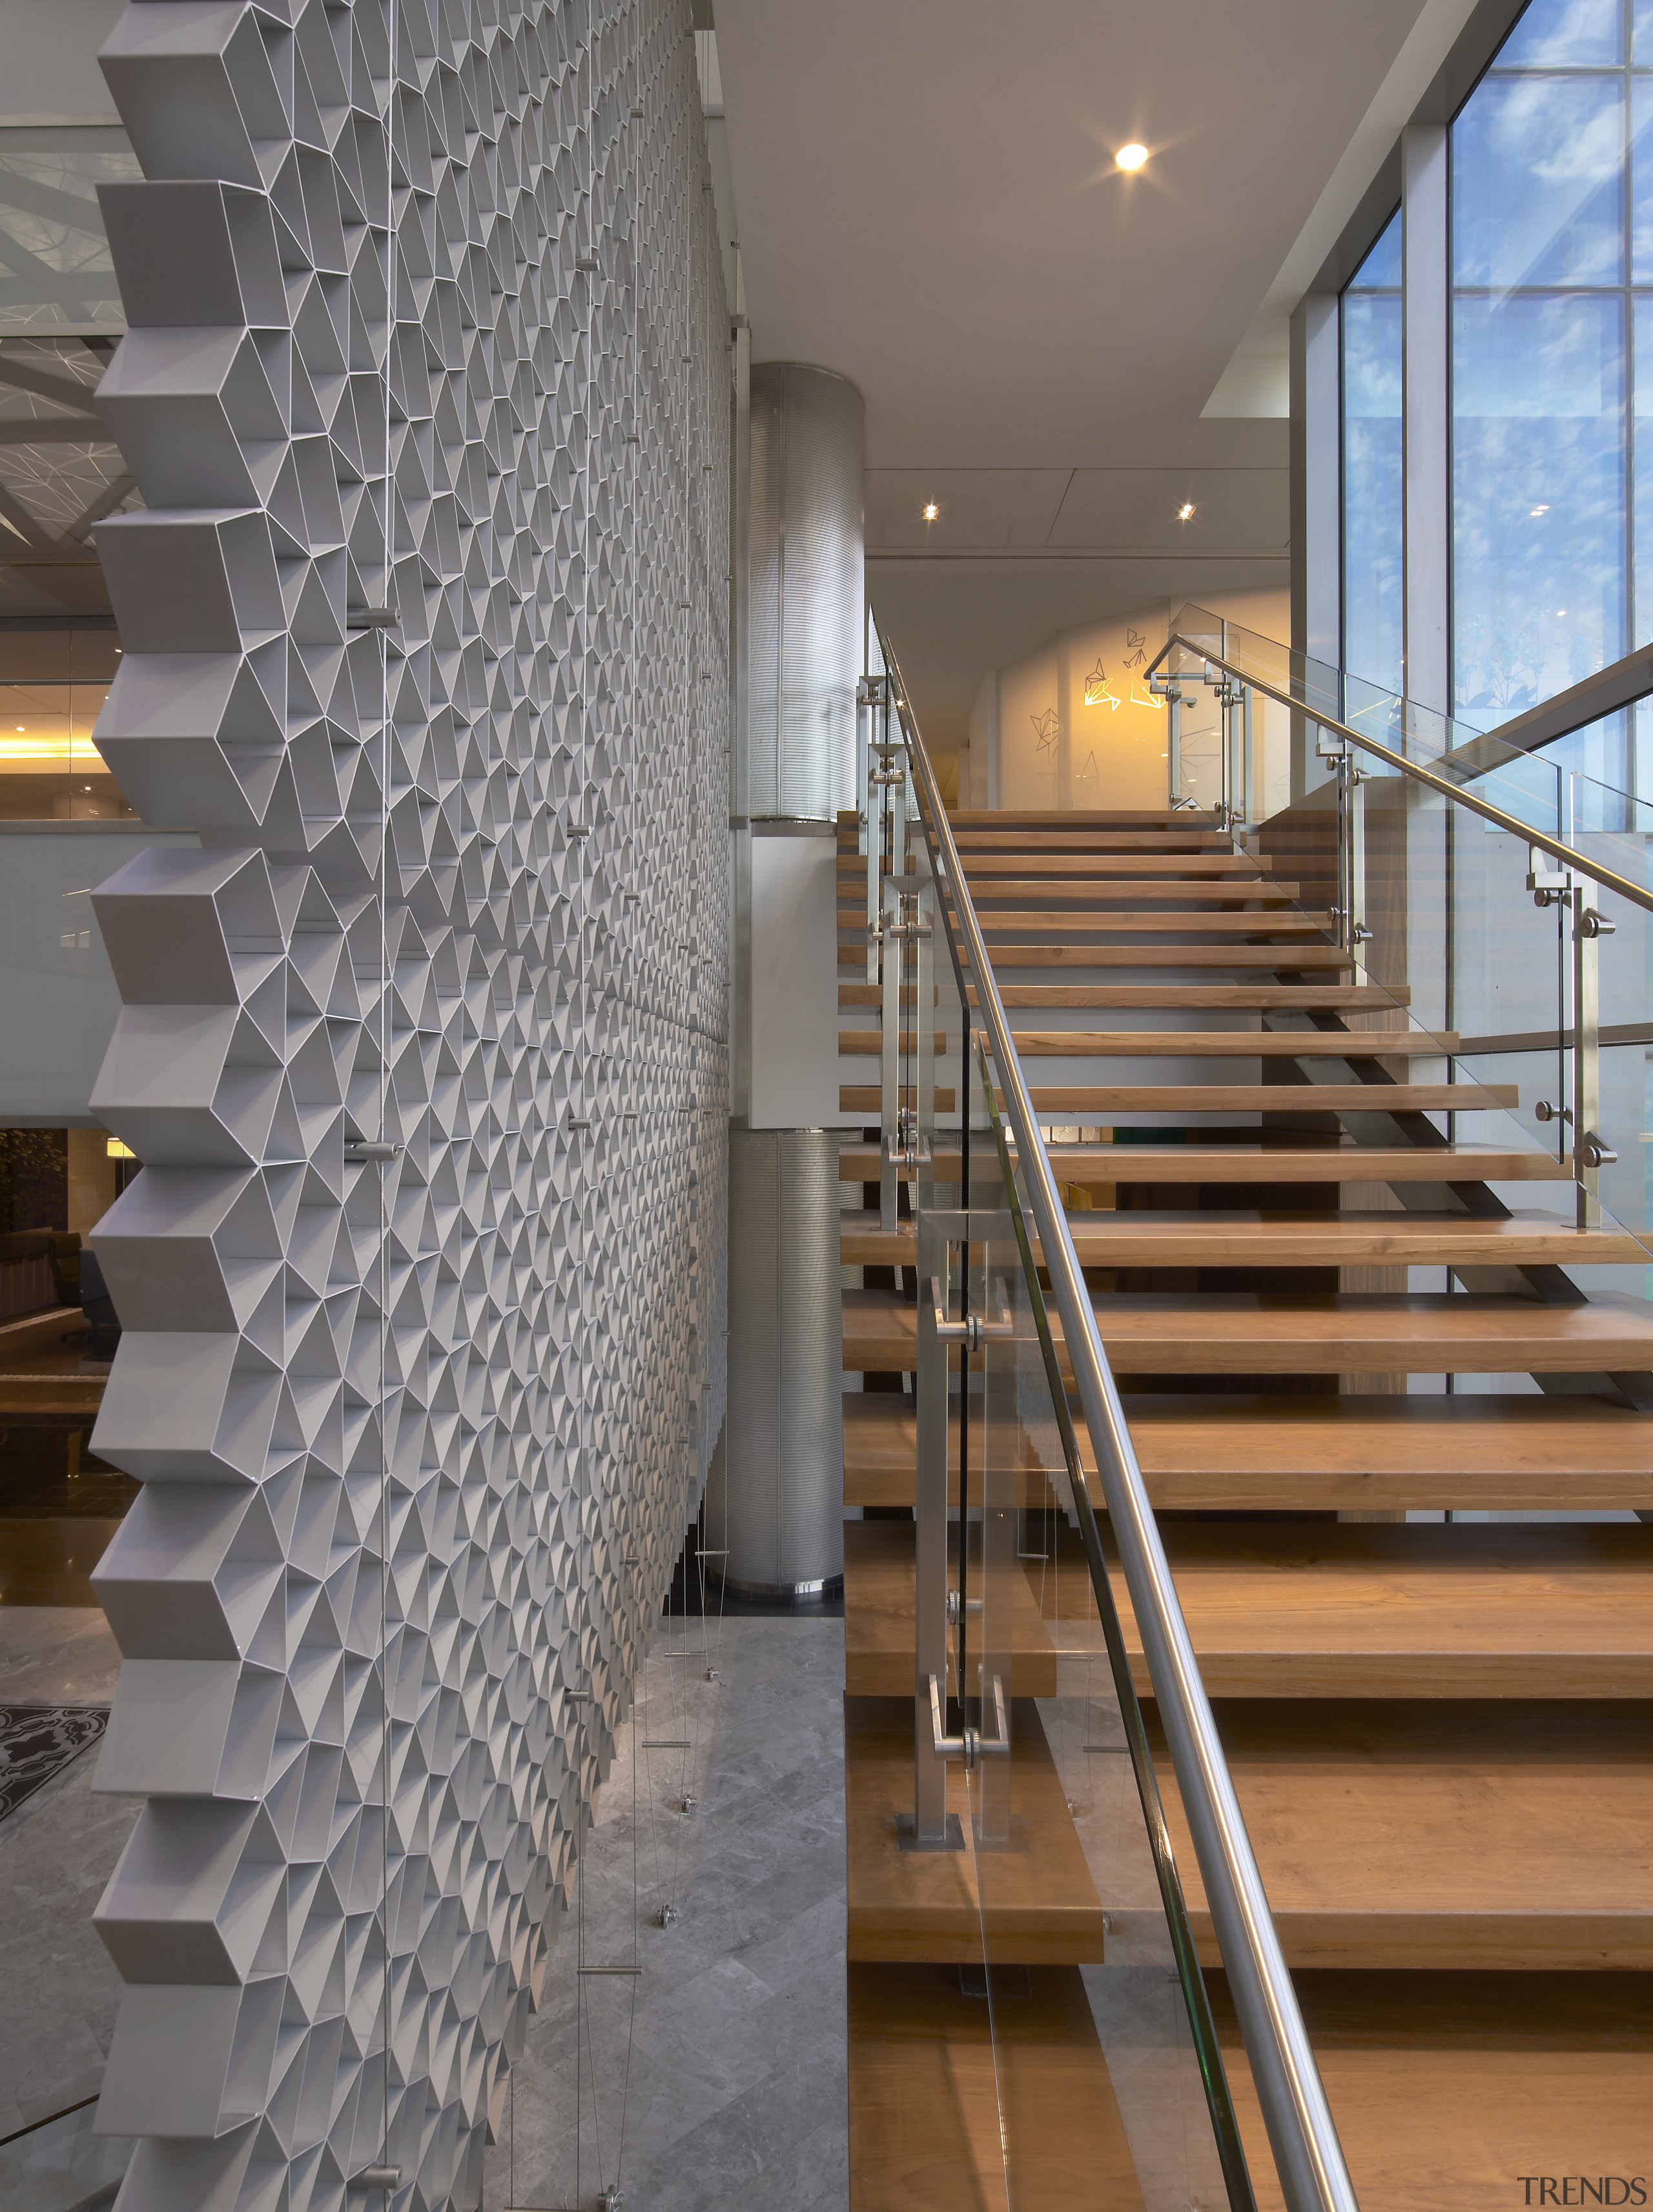 Wooden stairs with grey cutout feature wall. - architecture, baluster, building, daylighting, flooring, glass, handrail, interior design, lobby, stairs, structure, wall, gray